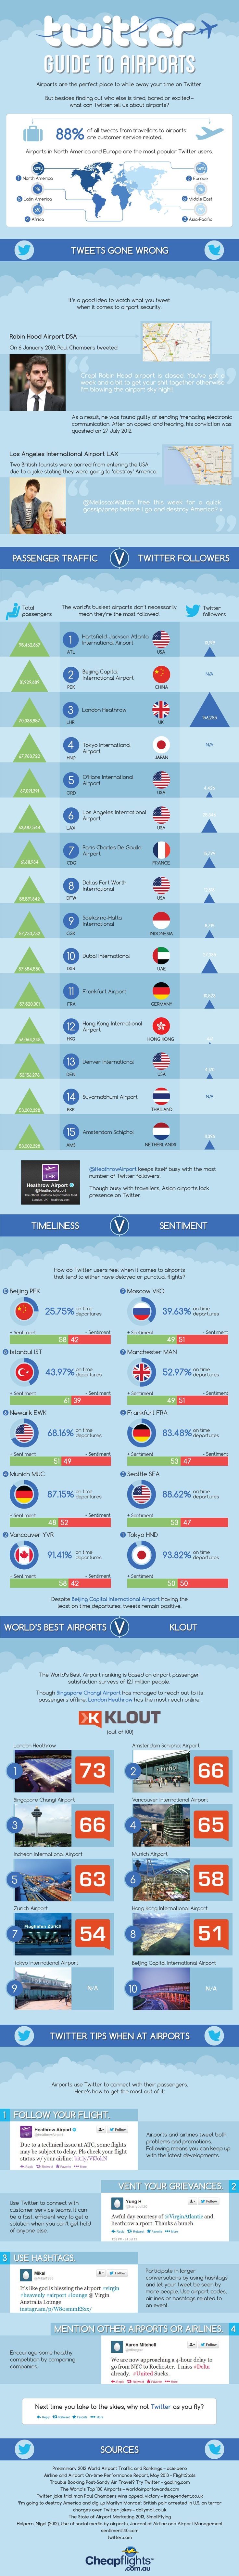 The Twitter Guide To Airports [INFOGRAPHIC]